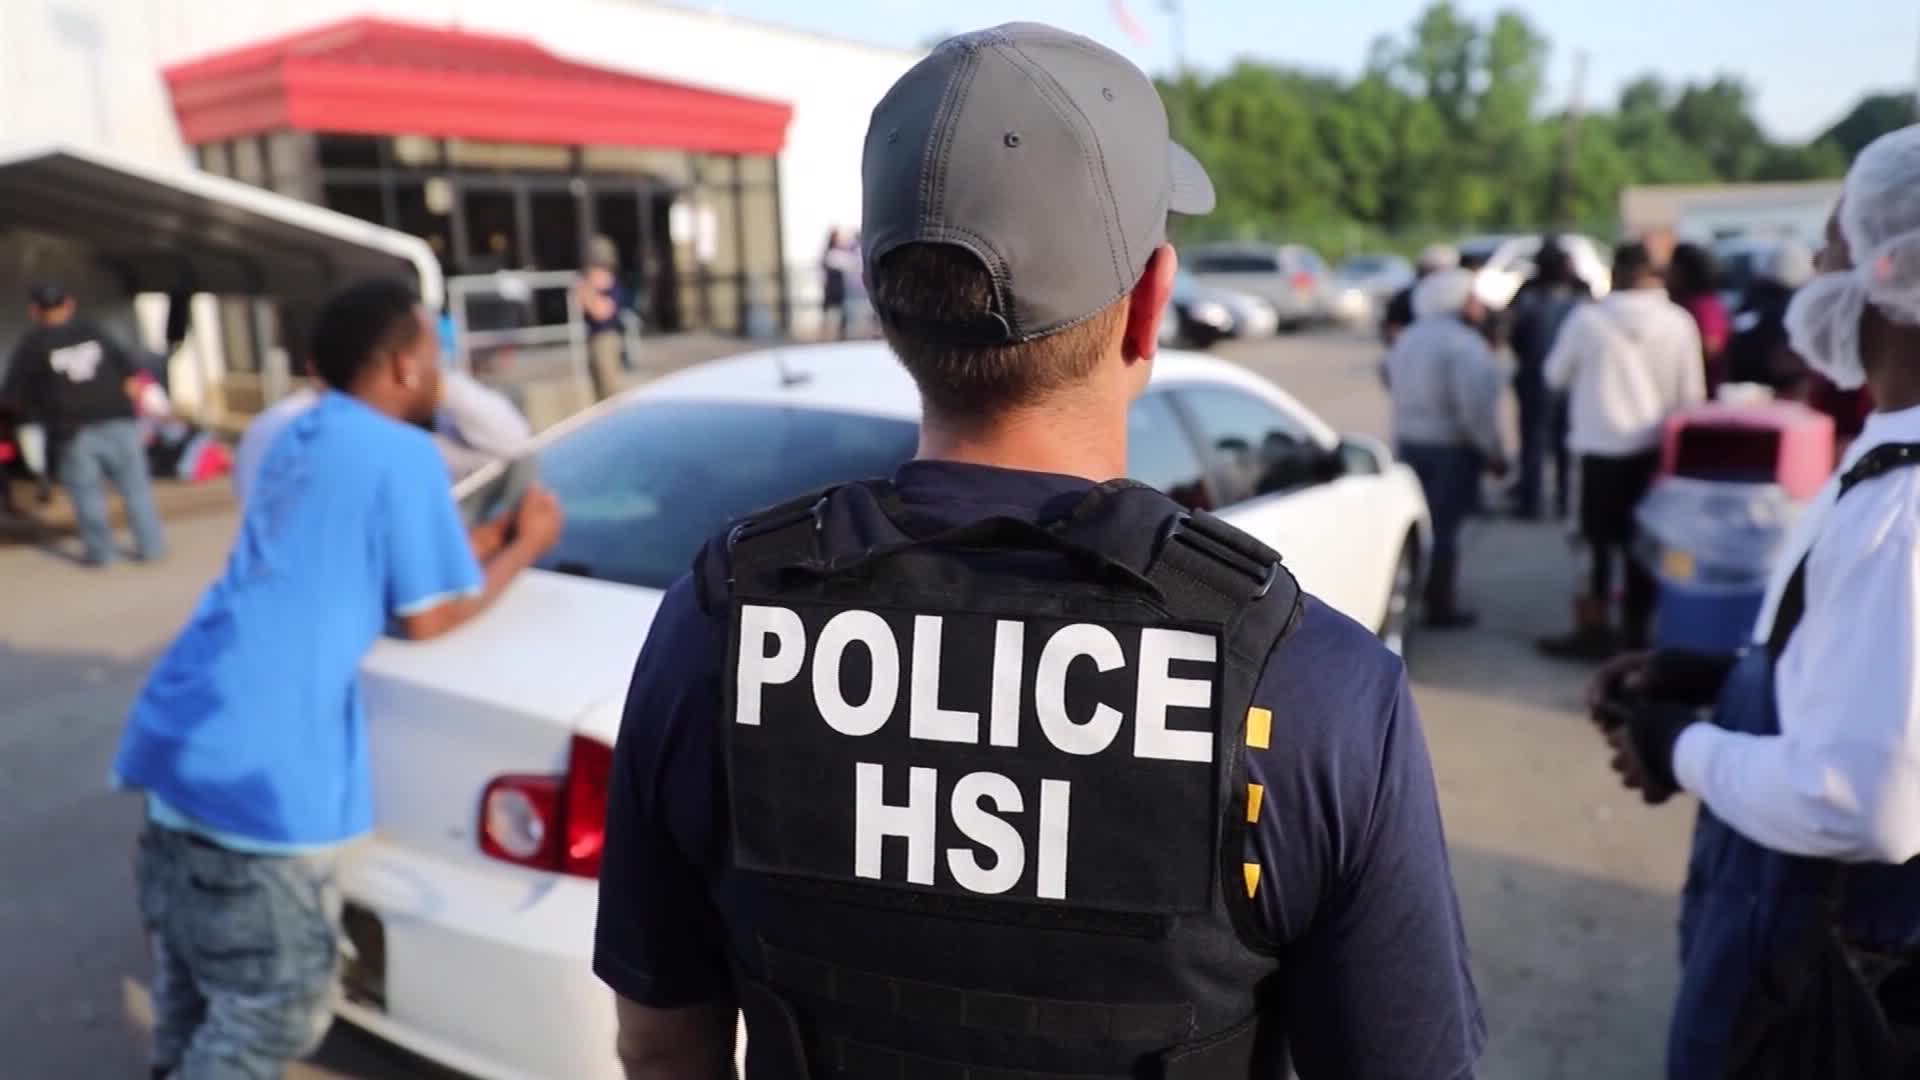 4 employees at Mississippi food plants indicted on immigration-related charges one year after historic raids